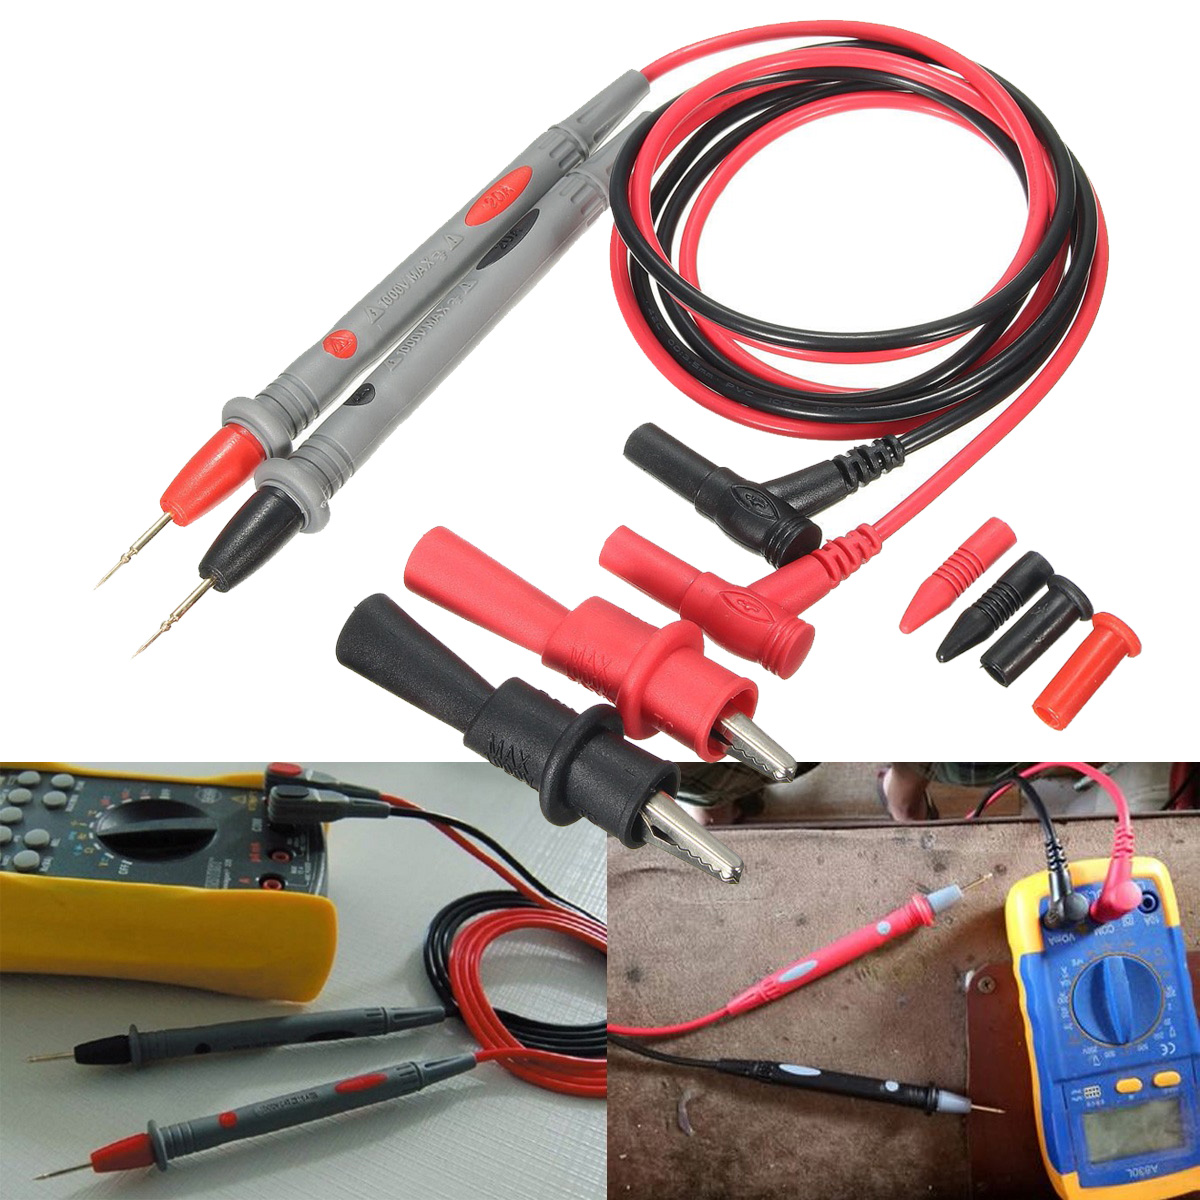 2PCS 1000V 20A Probe Test Lead & Alloy Alligator Electrical Tools Clips Clamp Cable Use for Multi Meter Digital Multimeter Test